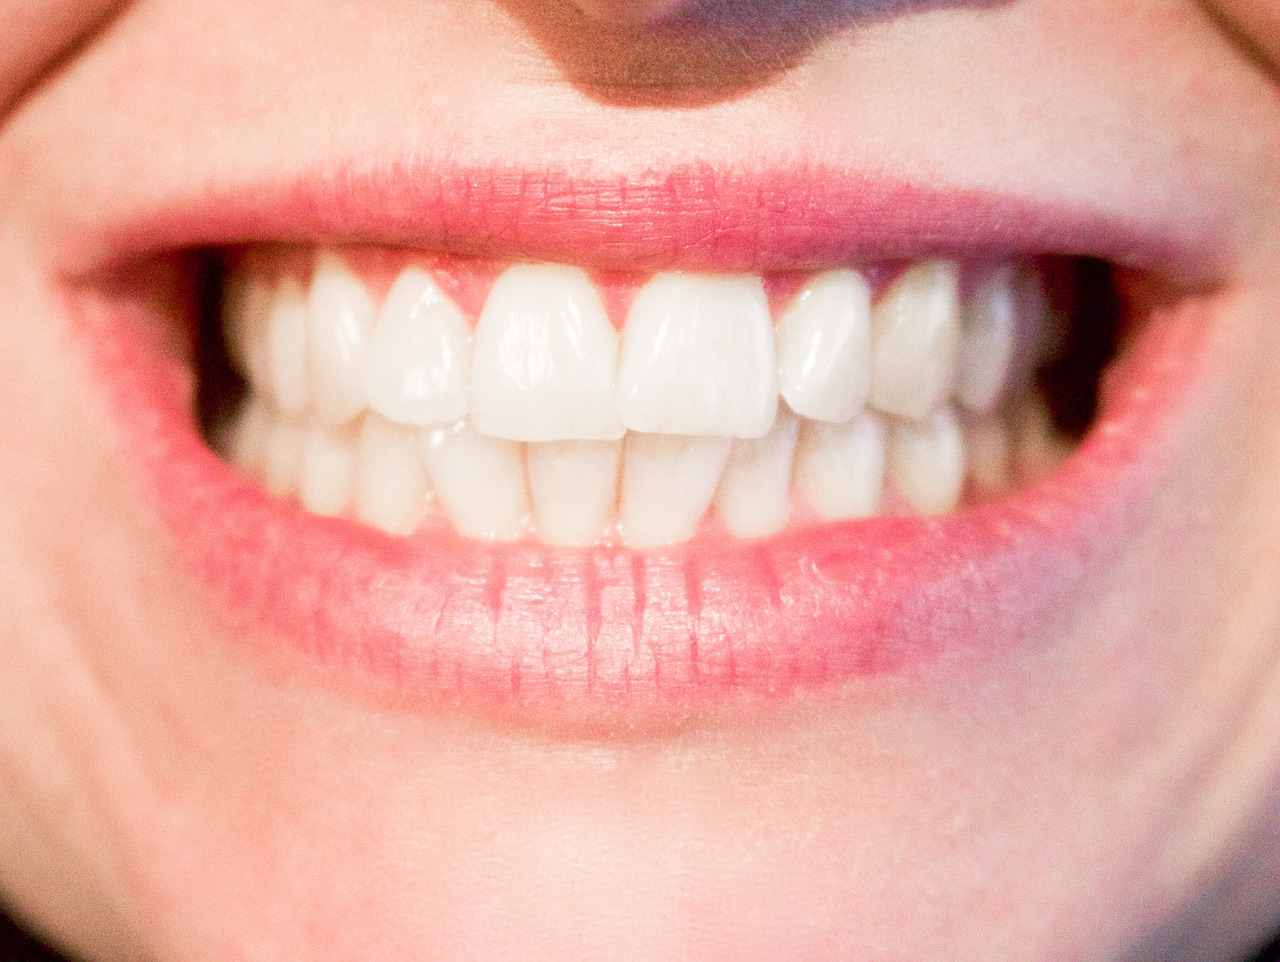 teeth whitening facts and myths